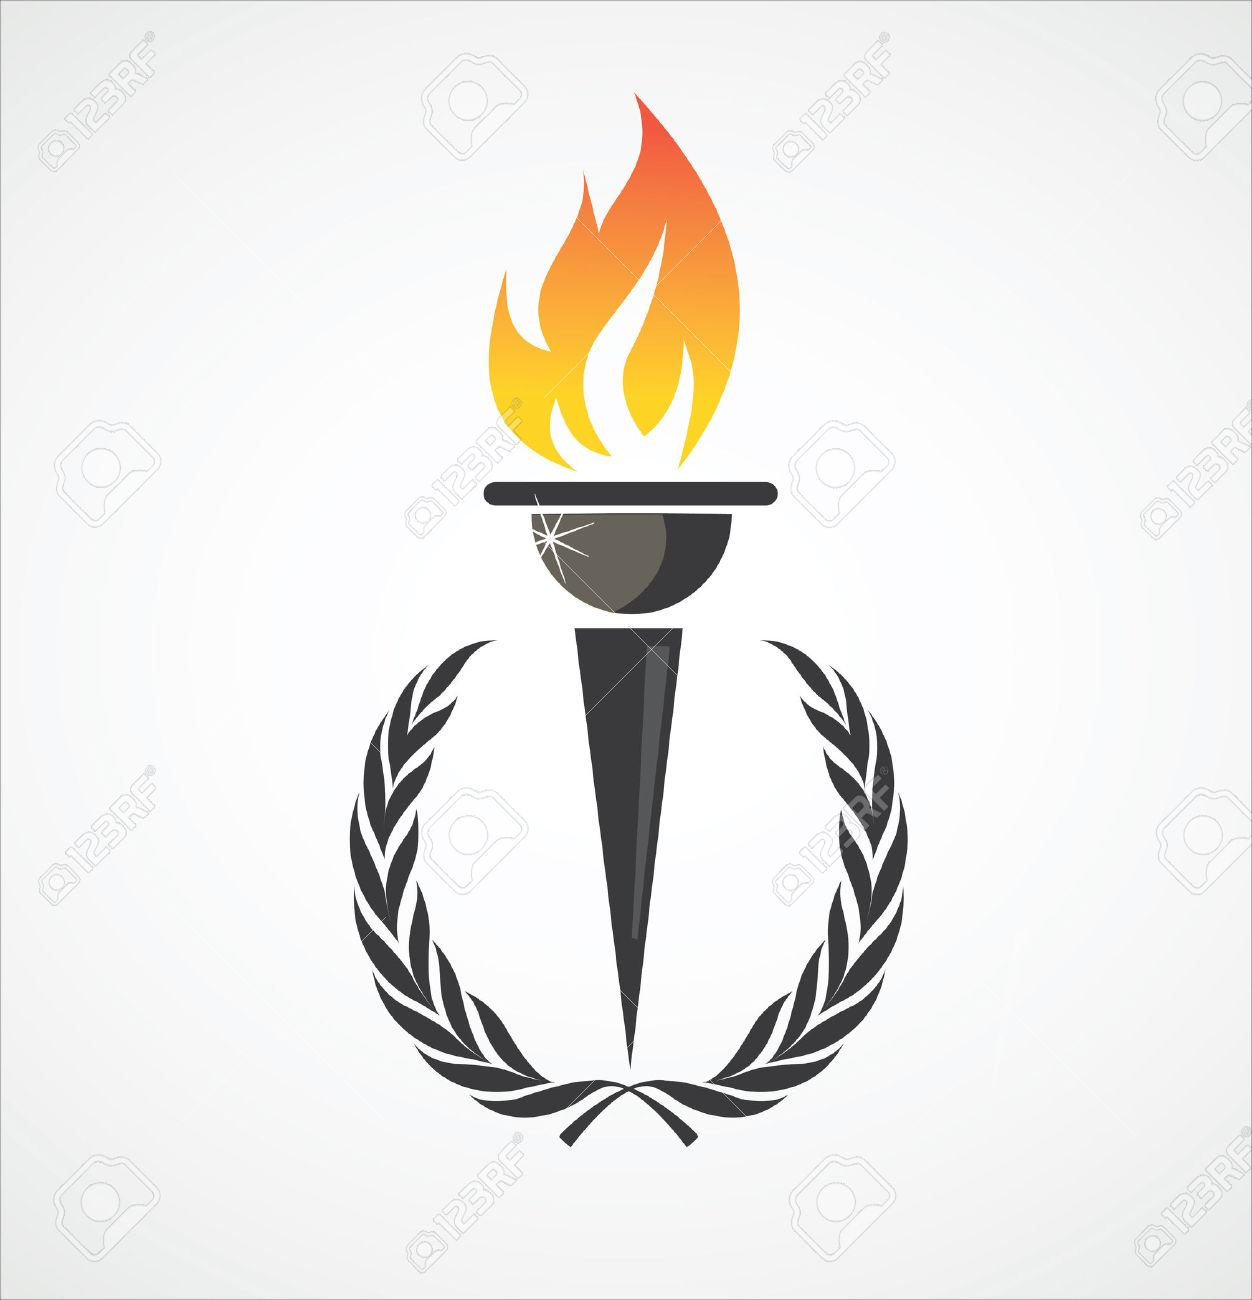 Flaming Torch In Laurel Wreath For Sports Design Royalty Free ... for sports torch logo  45ifm